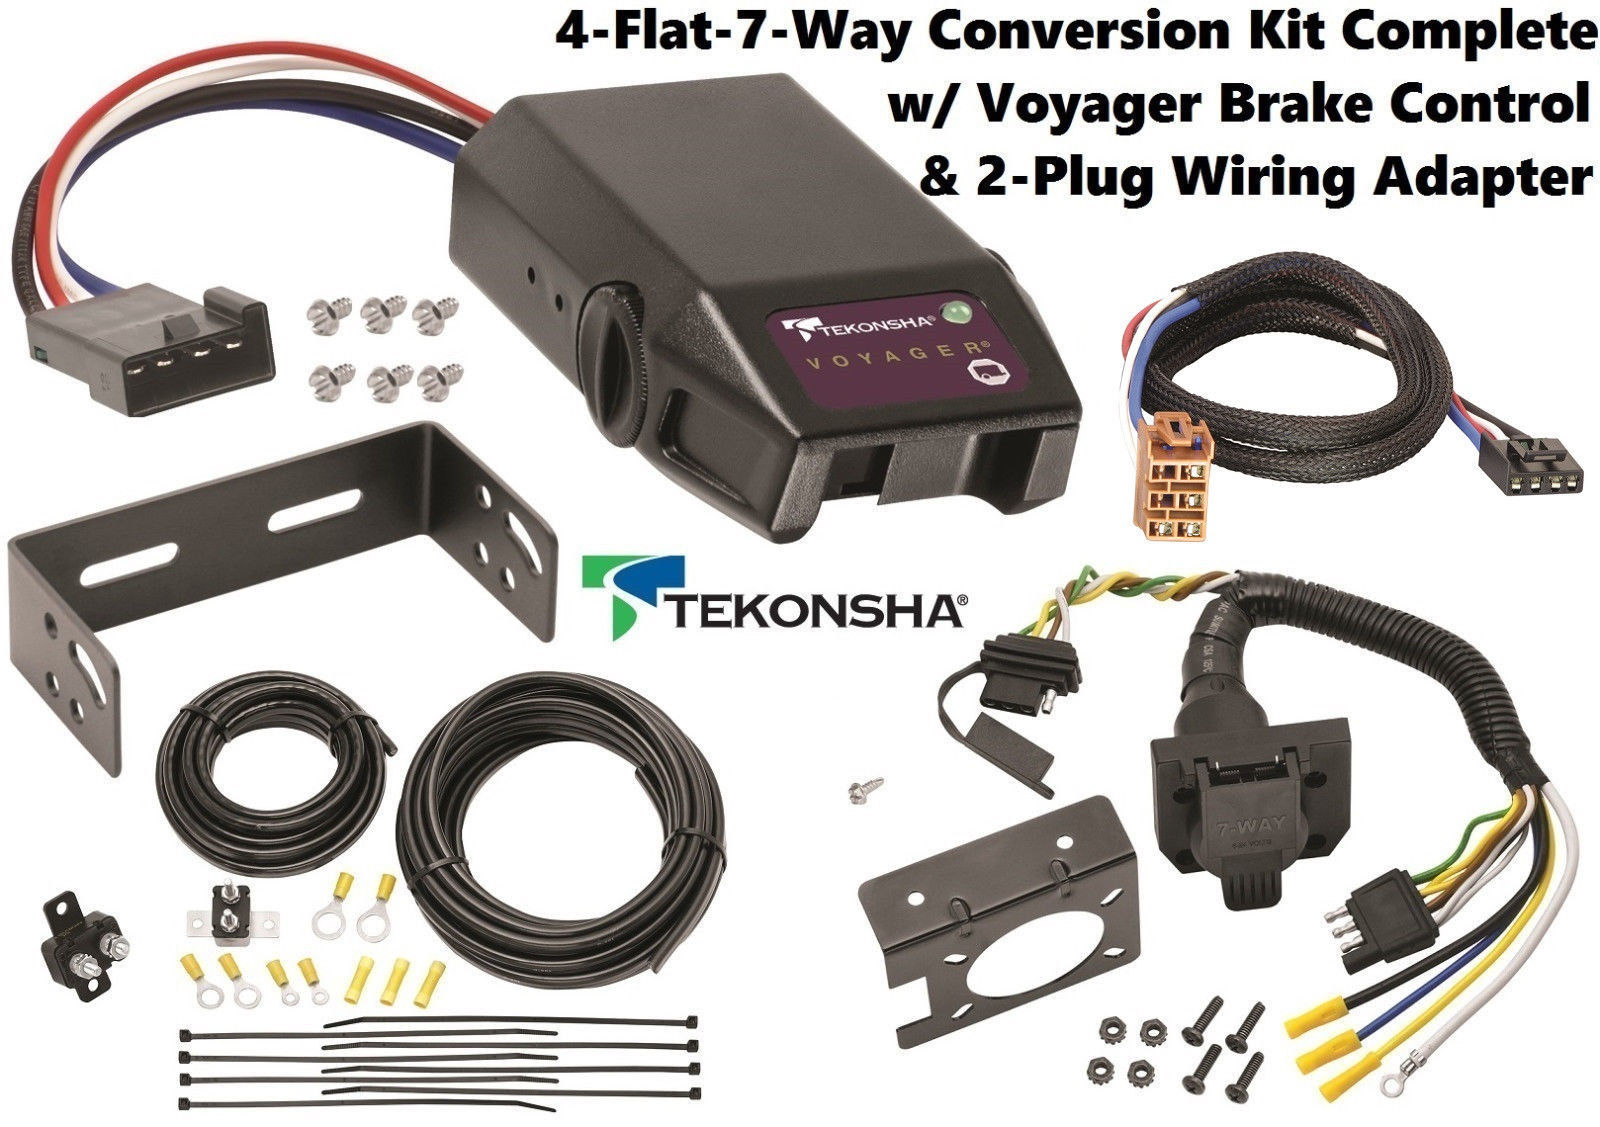 2002 CADILLAC ESCALADE TEKONSHA 4FLAT-7WAY CONVERSION W/ VOYAGER BRAKE CONTROL